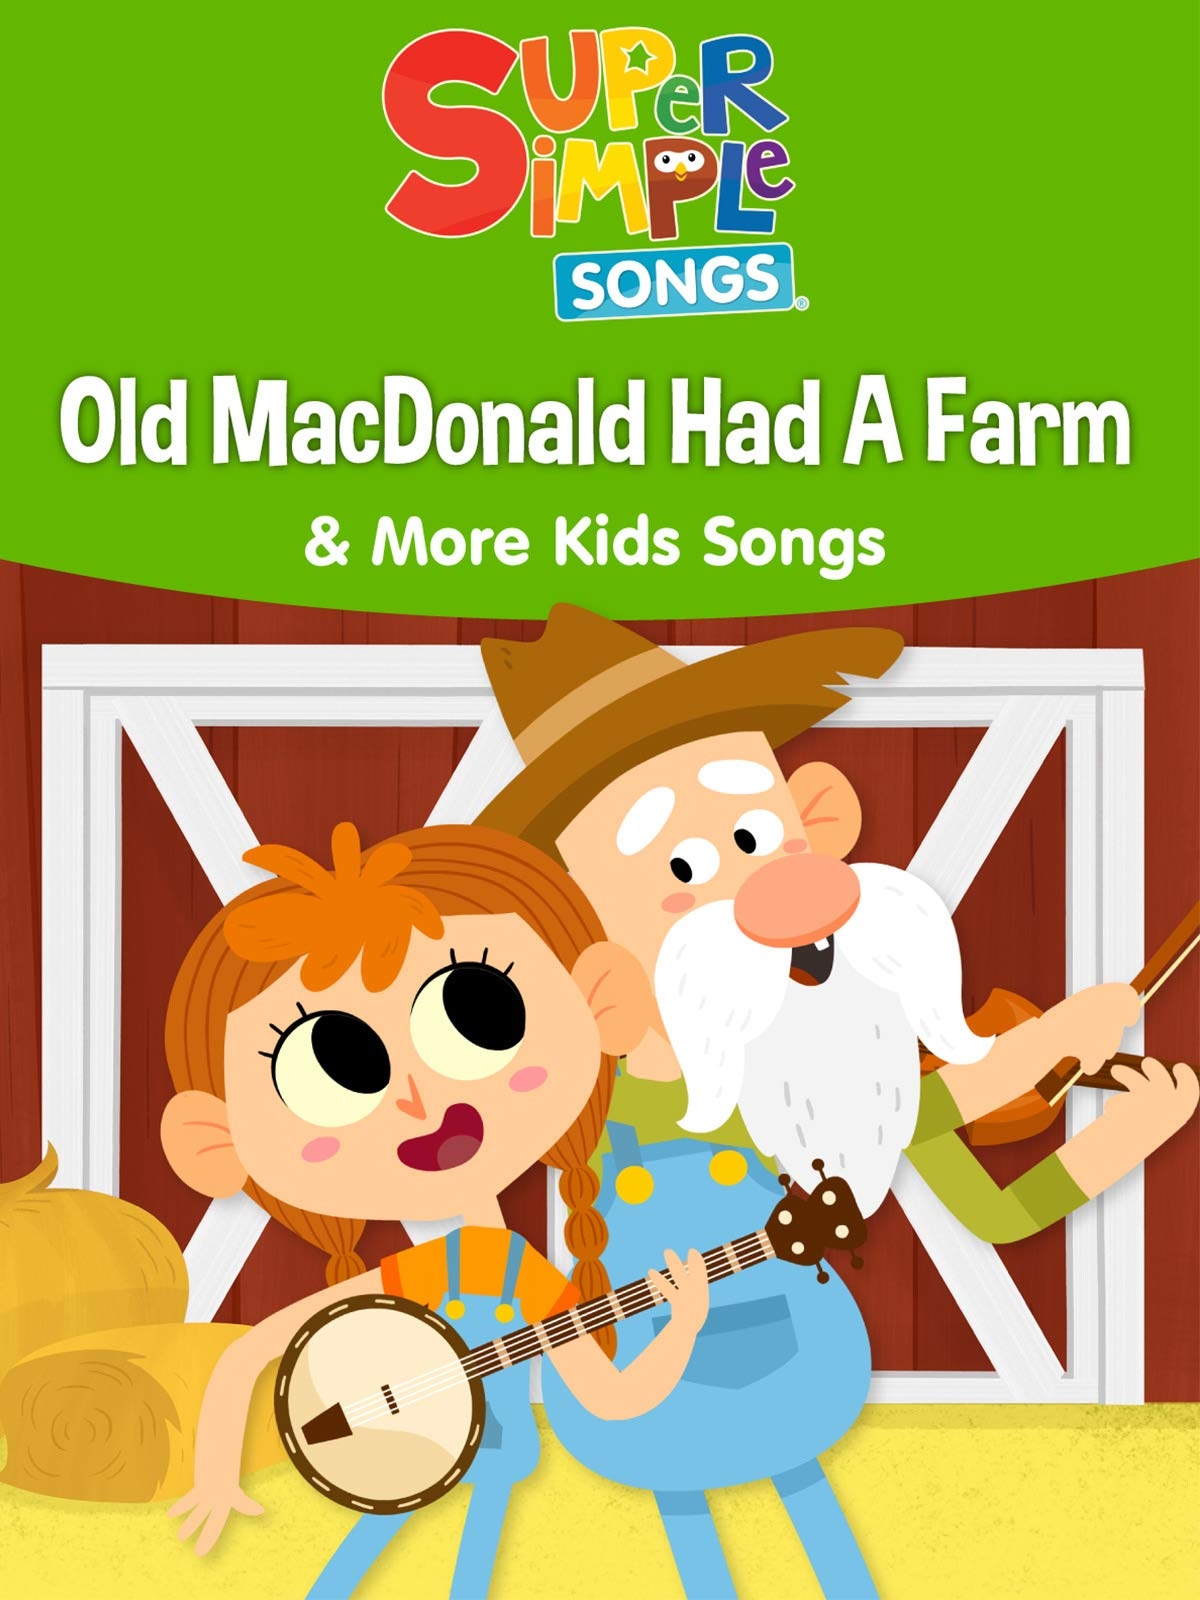 Watch 'Old MacDonald Had a Farm & More Kids Songs - Super